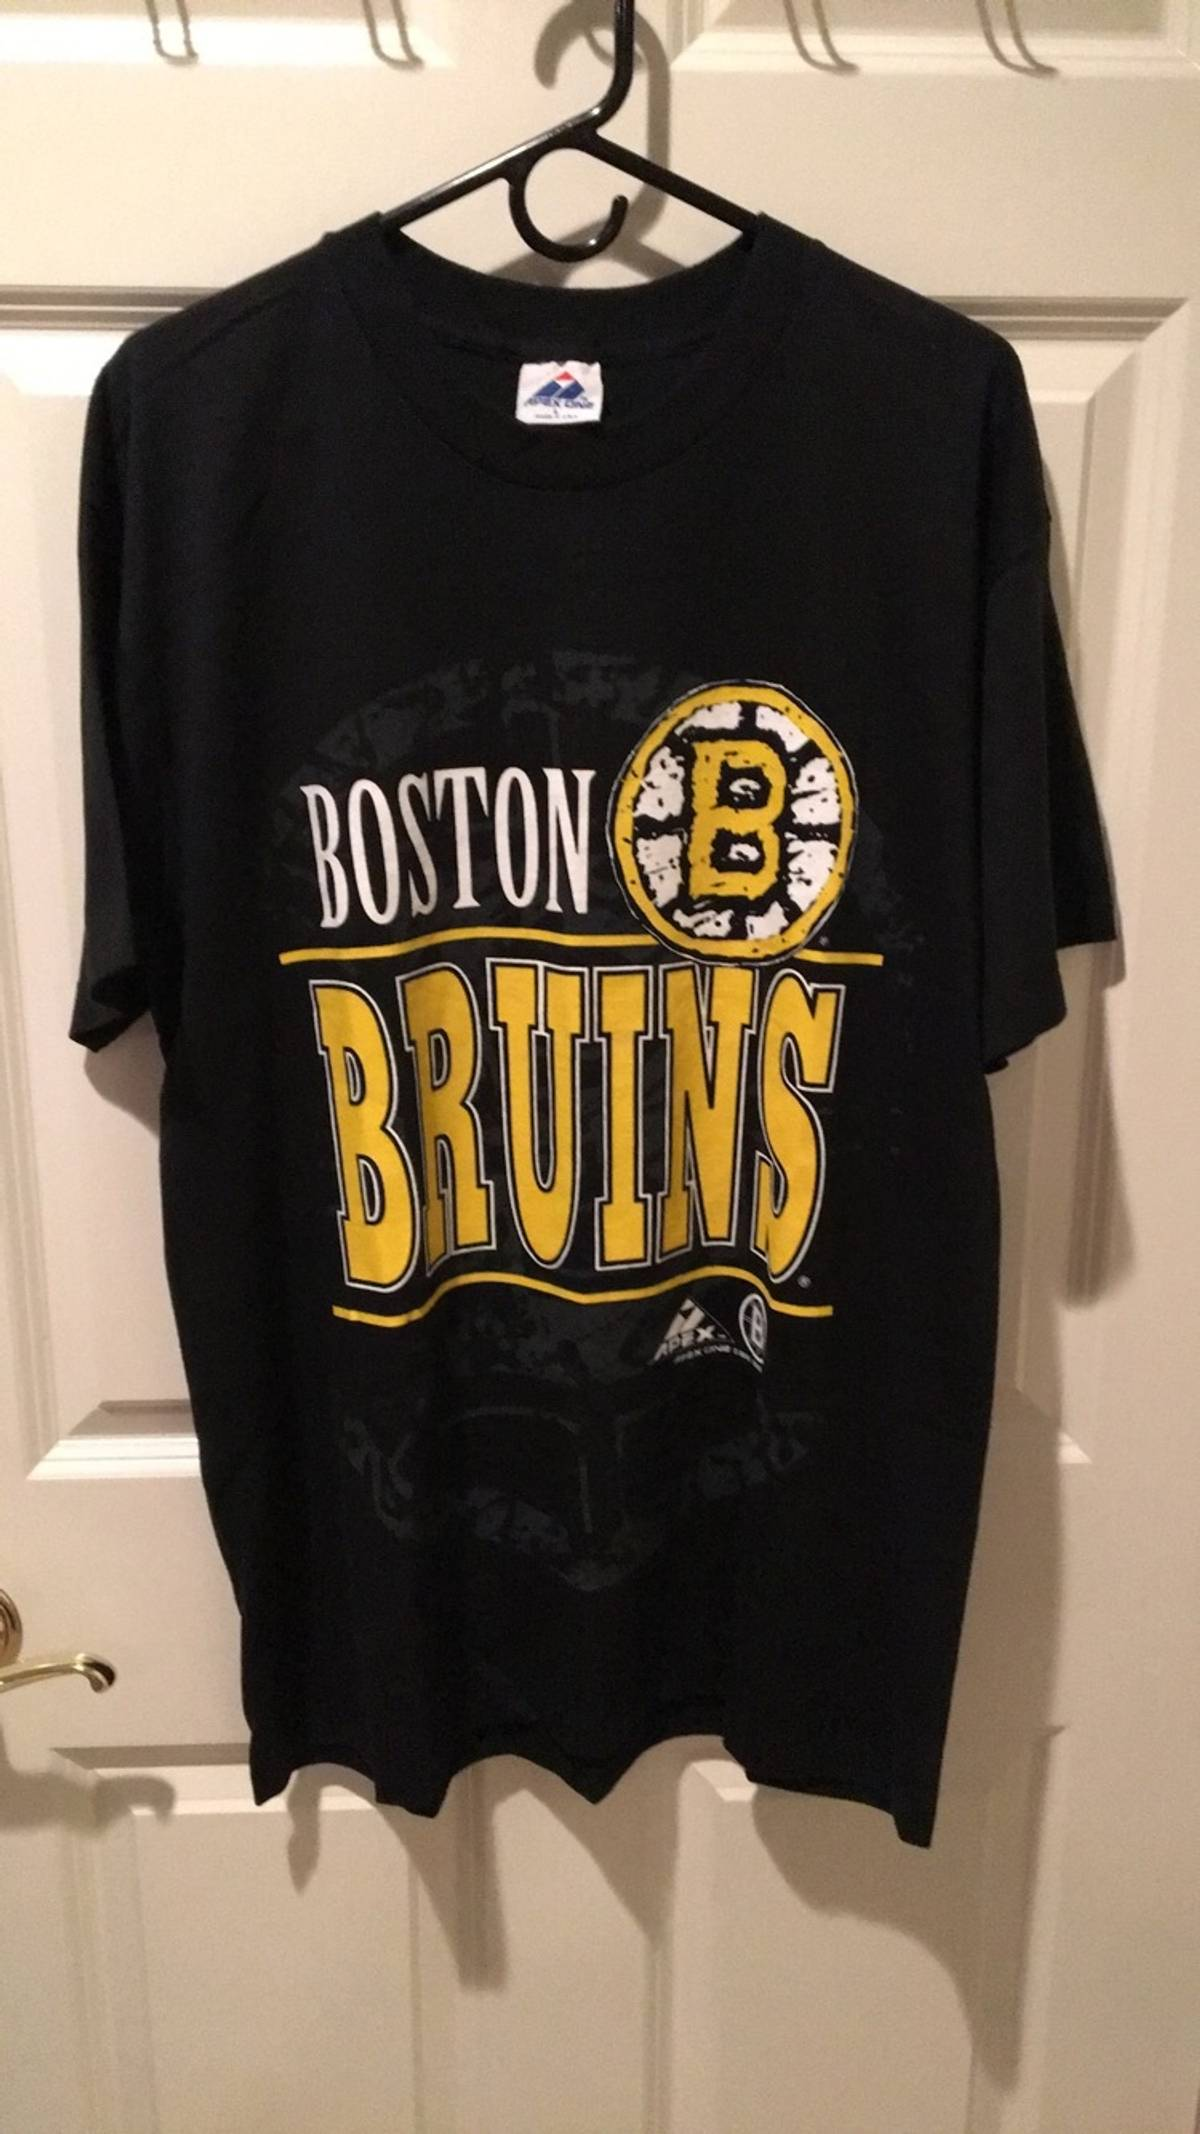 6993d0099d203 Vintage × Boston Celtics × Apex One ×. Vintage 1993 Apex Boston bruins t  shirt